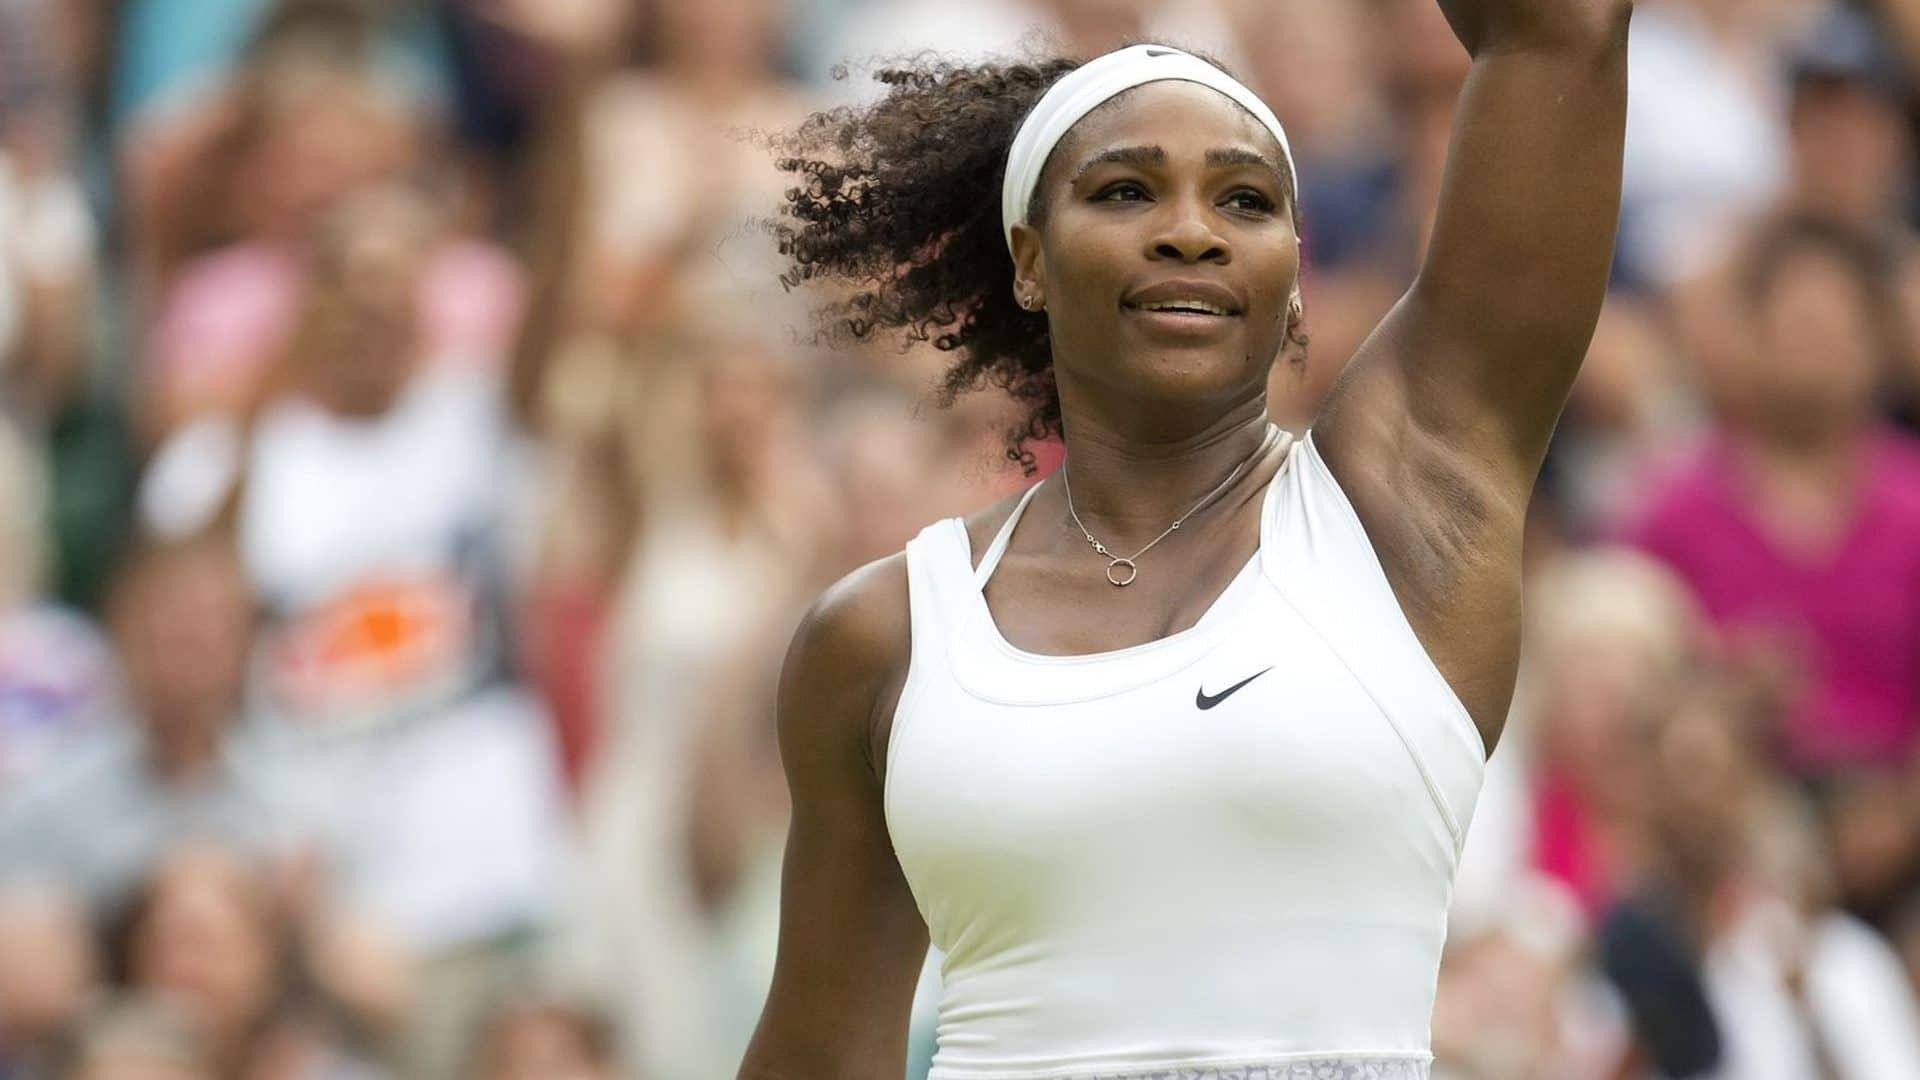 Serena Williams 2018 Wallpapers (86+ images)